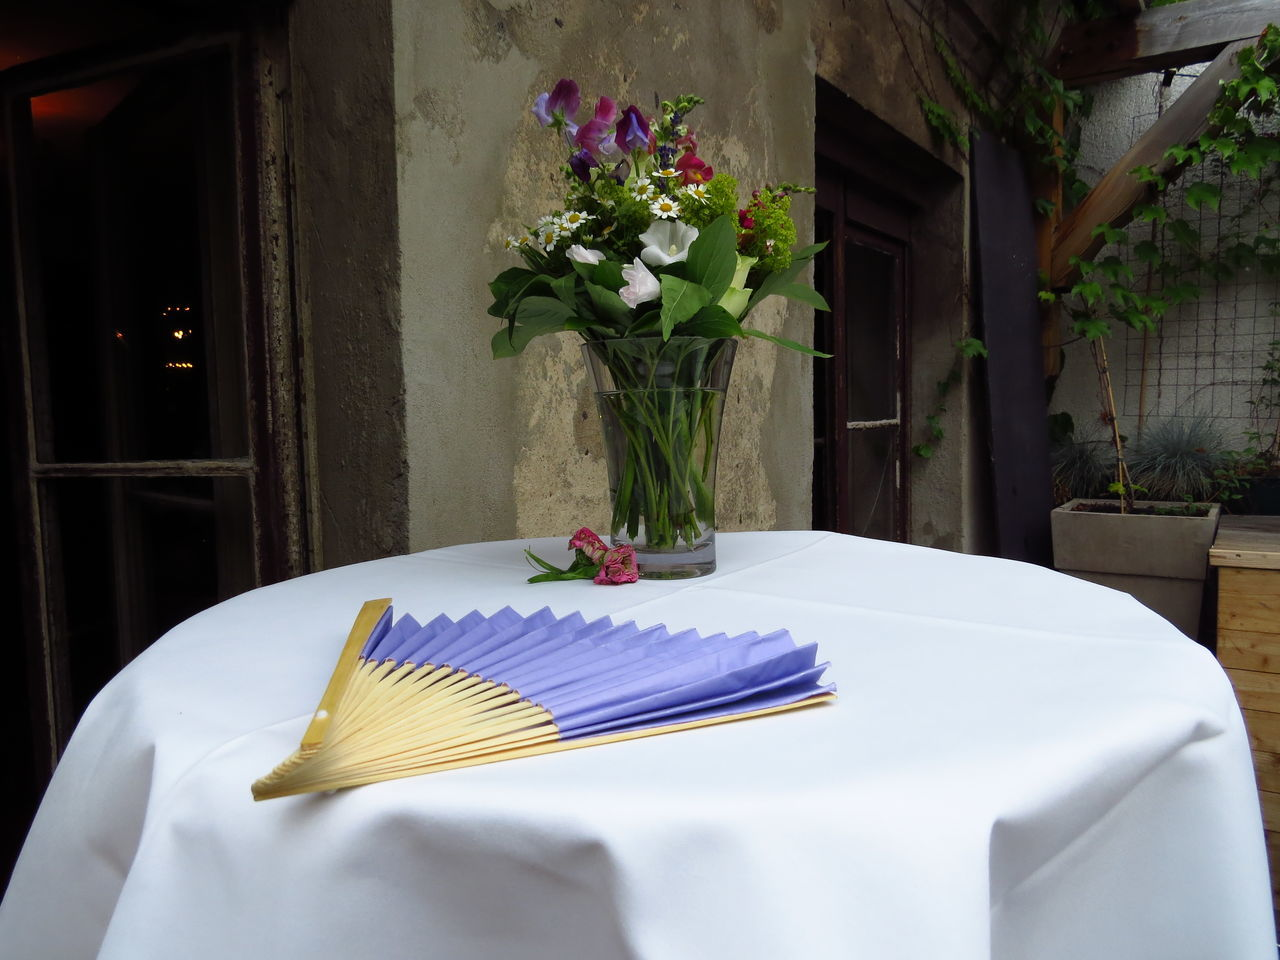 flower, table, vase, indoors, no people, place setting, day, close-up